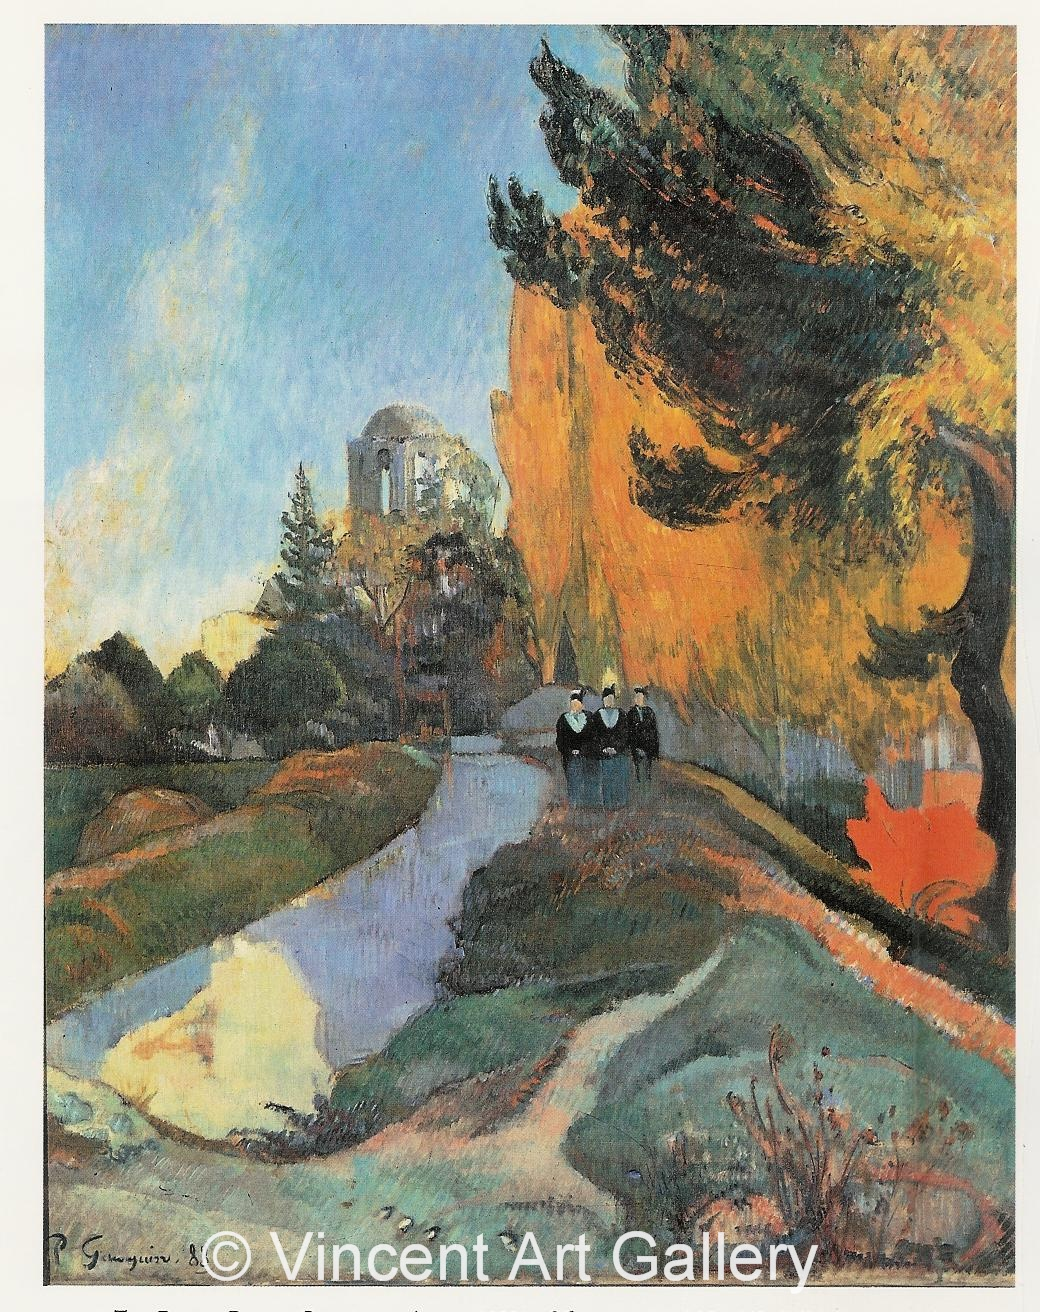 A483 - A3613, GAUGUIN, The Alyscamps